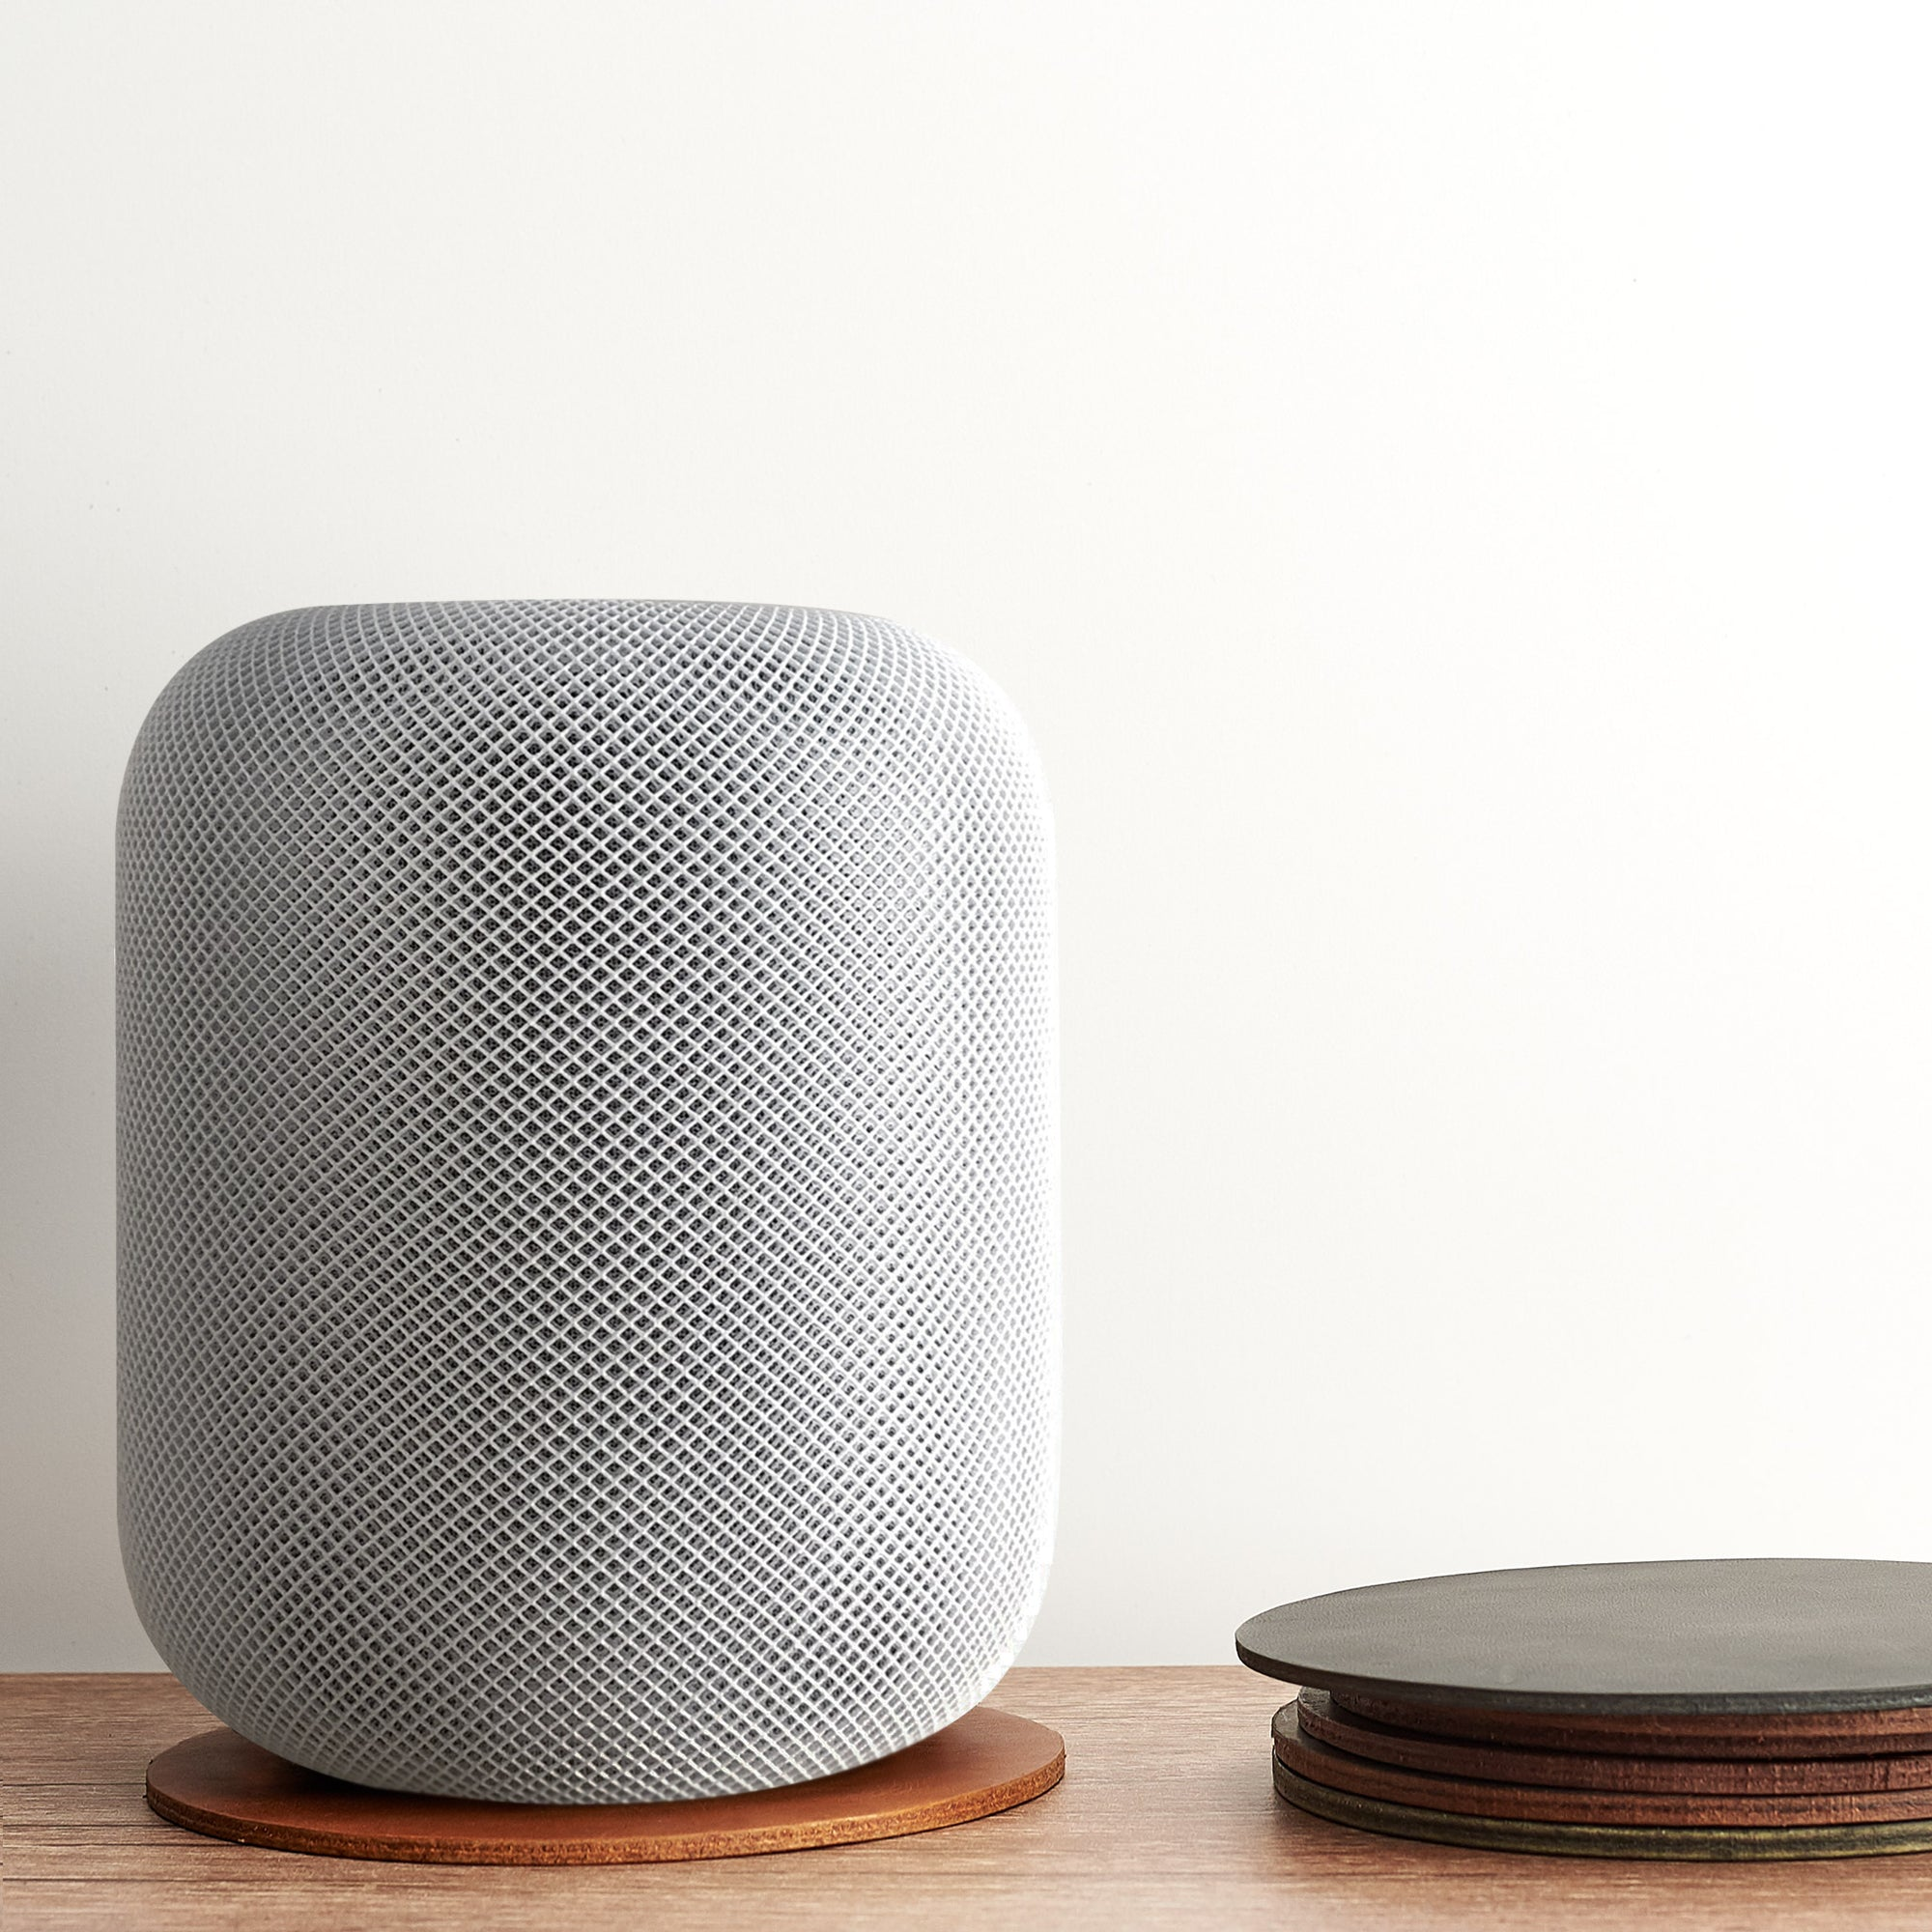 Leather homepod pad, protect wood surfaces from white rings, mens cowhide coasters for apple smart speaker